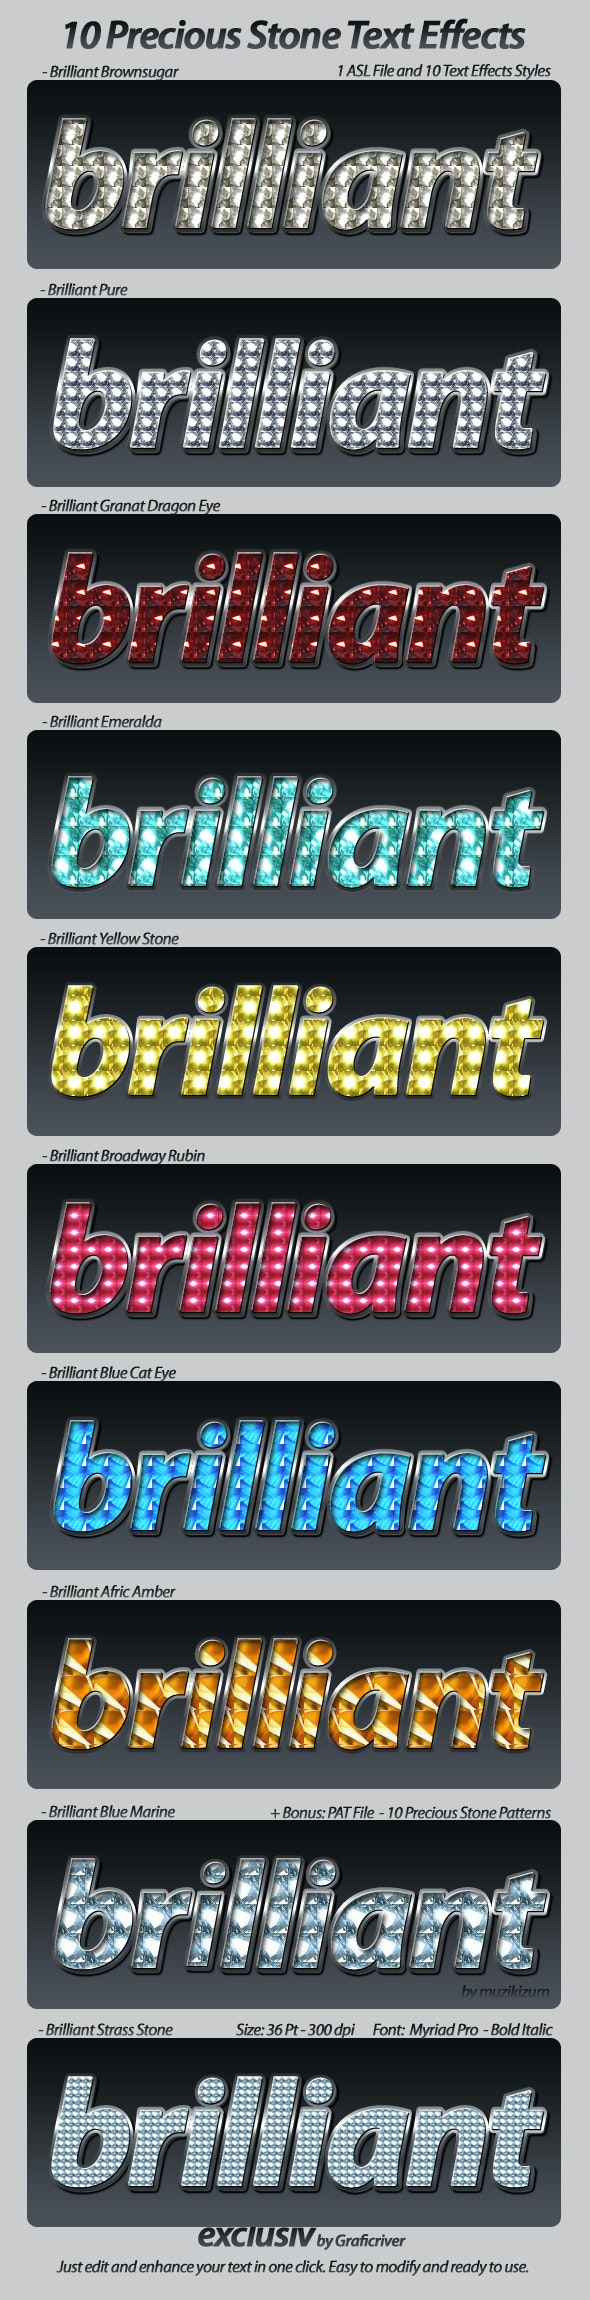 Stone Text Effects Styles - Text Effects Styles